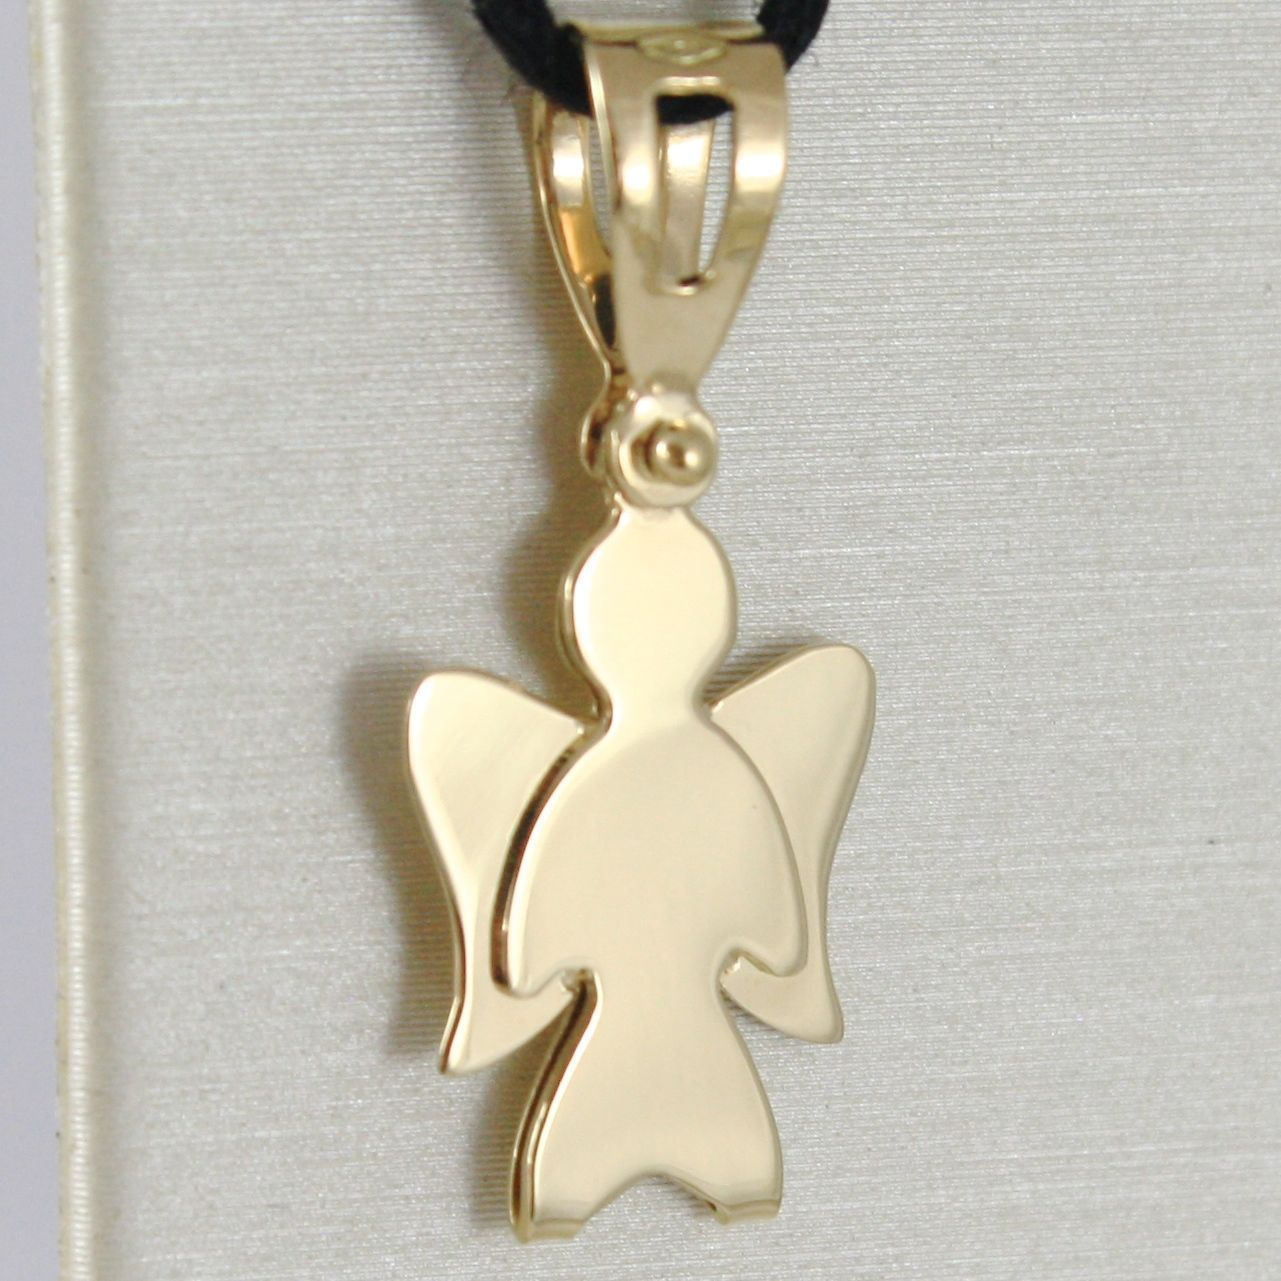 18K YELLOW GOLD PENDANT WITH LUSTER STYLIZED ANGEL  MADE IN ITALY  0.94 IN LONG